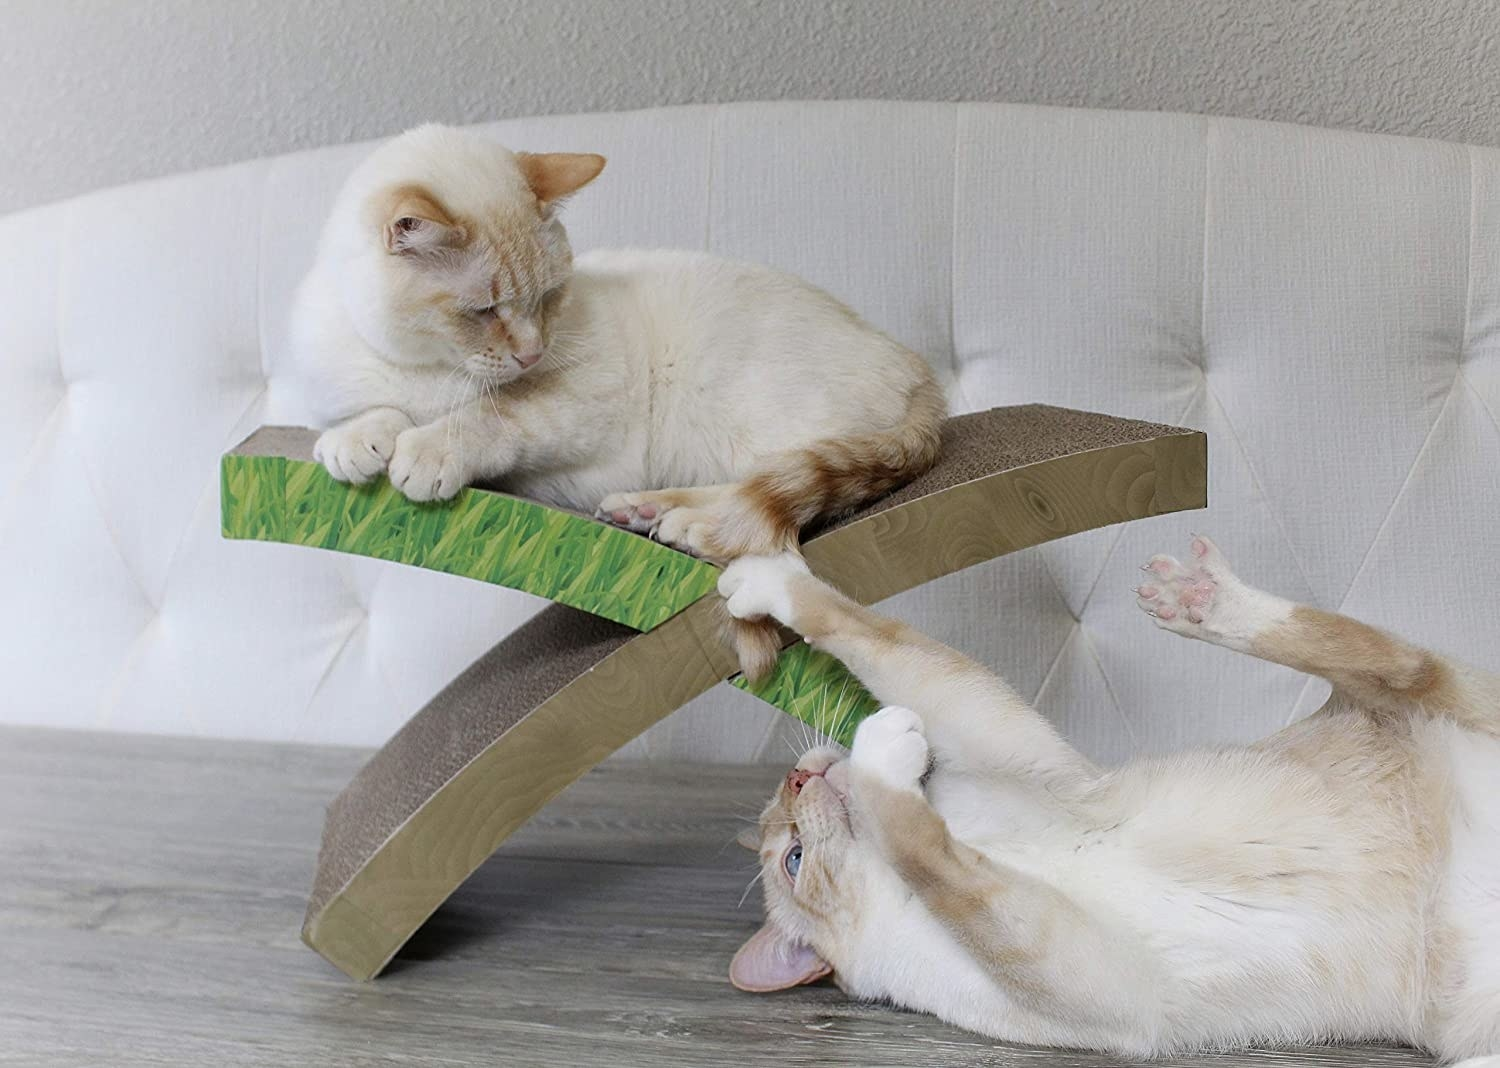 Two cats playing on X-shaped cardboard scratcher